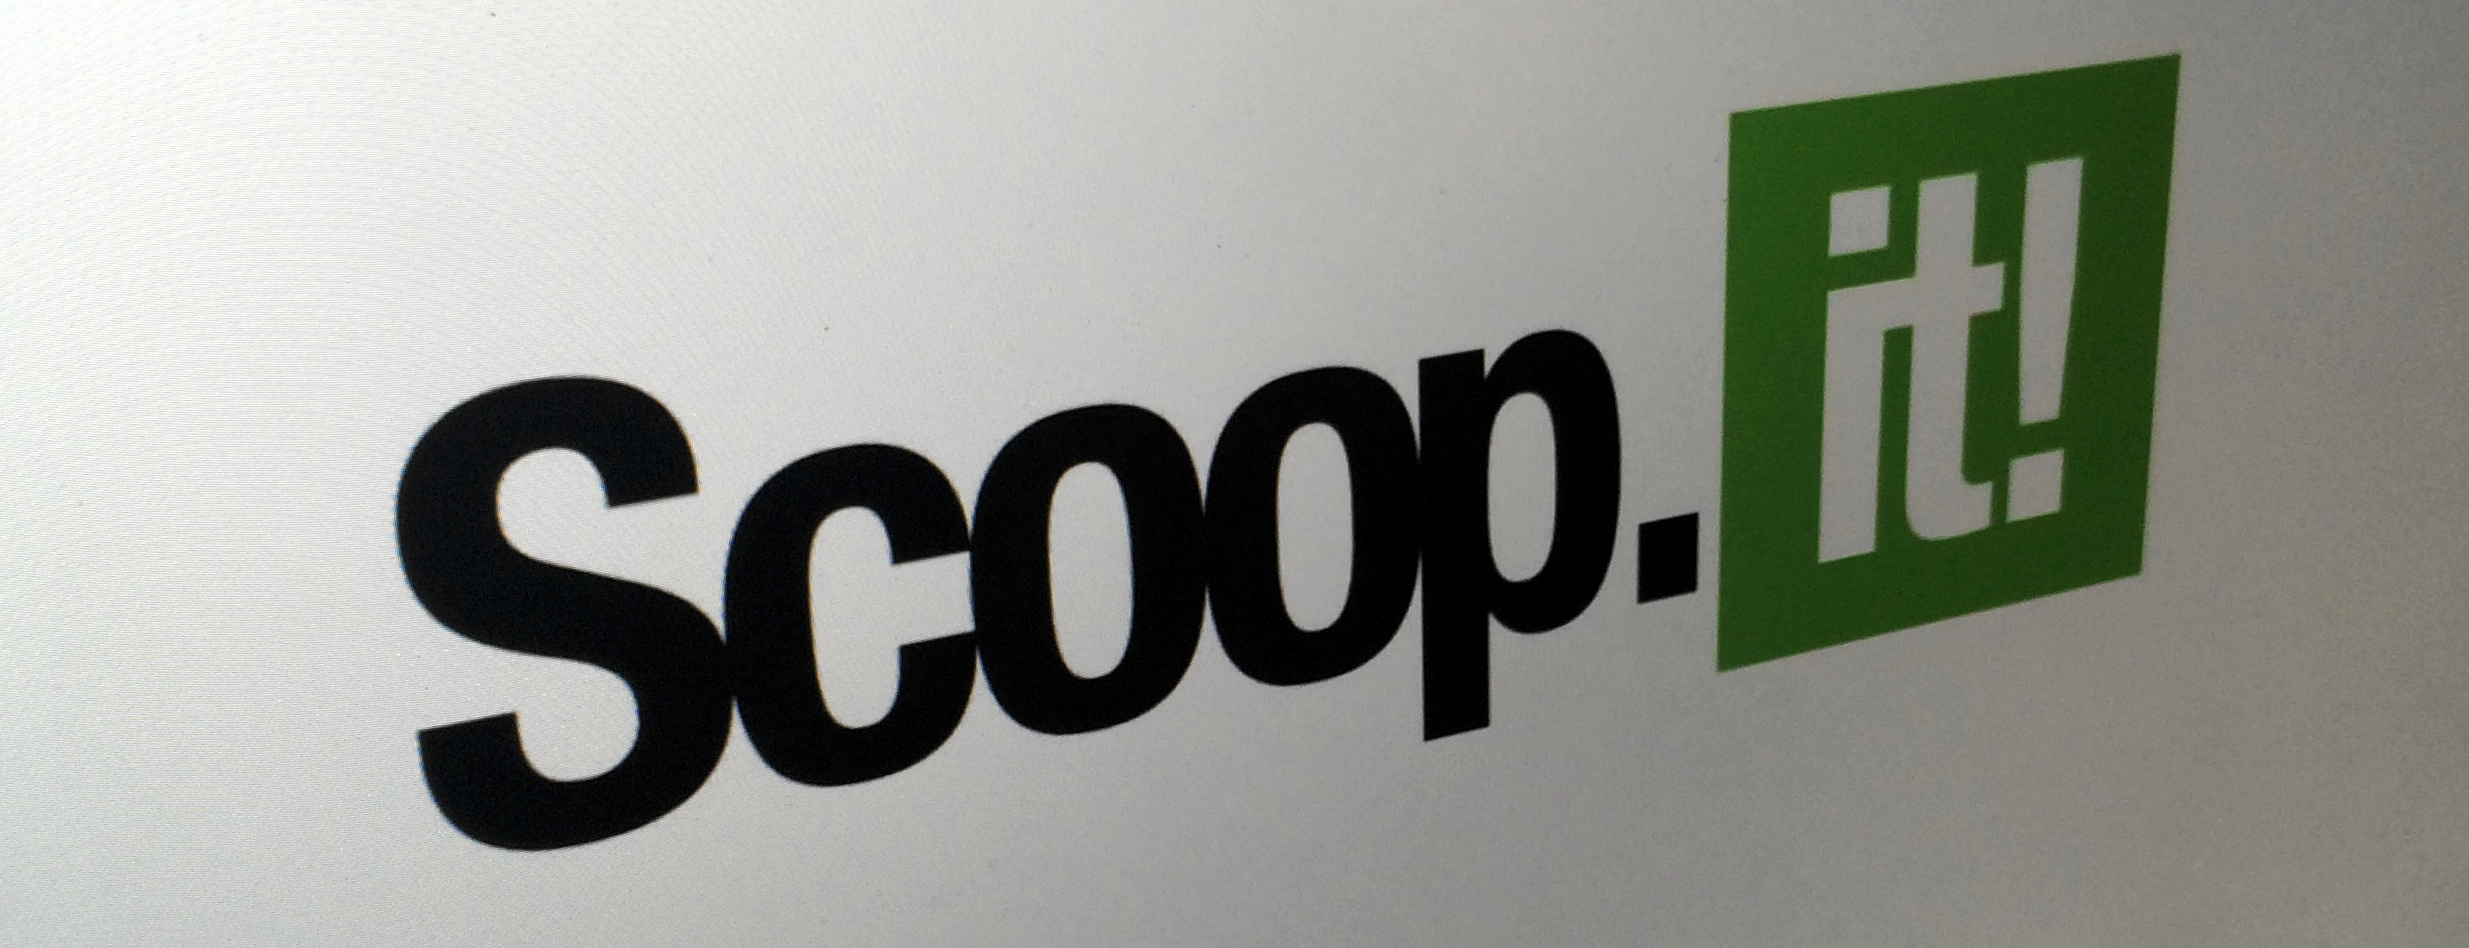 Scoop.it Now Helps Big Companies Share Knowledge